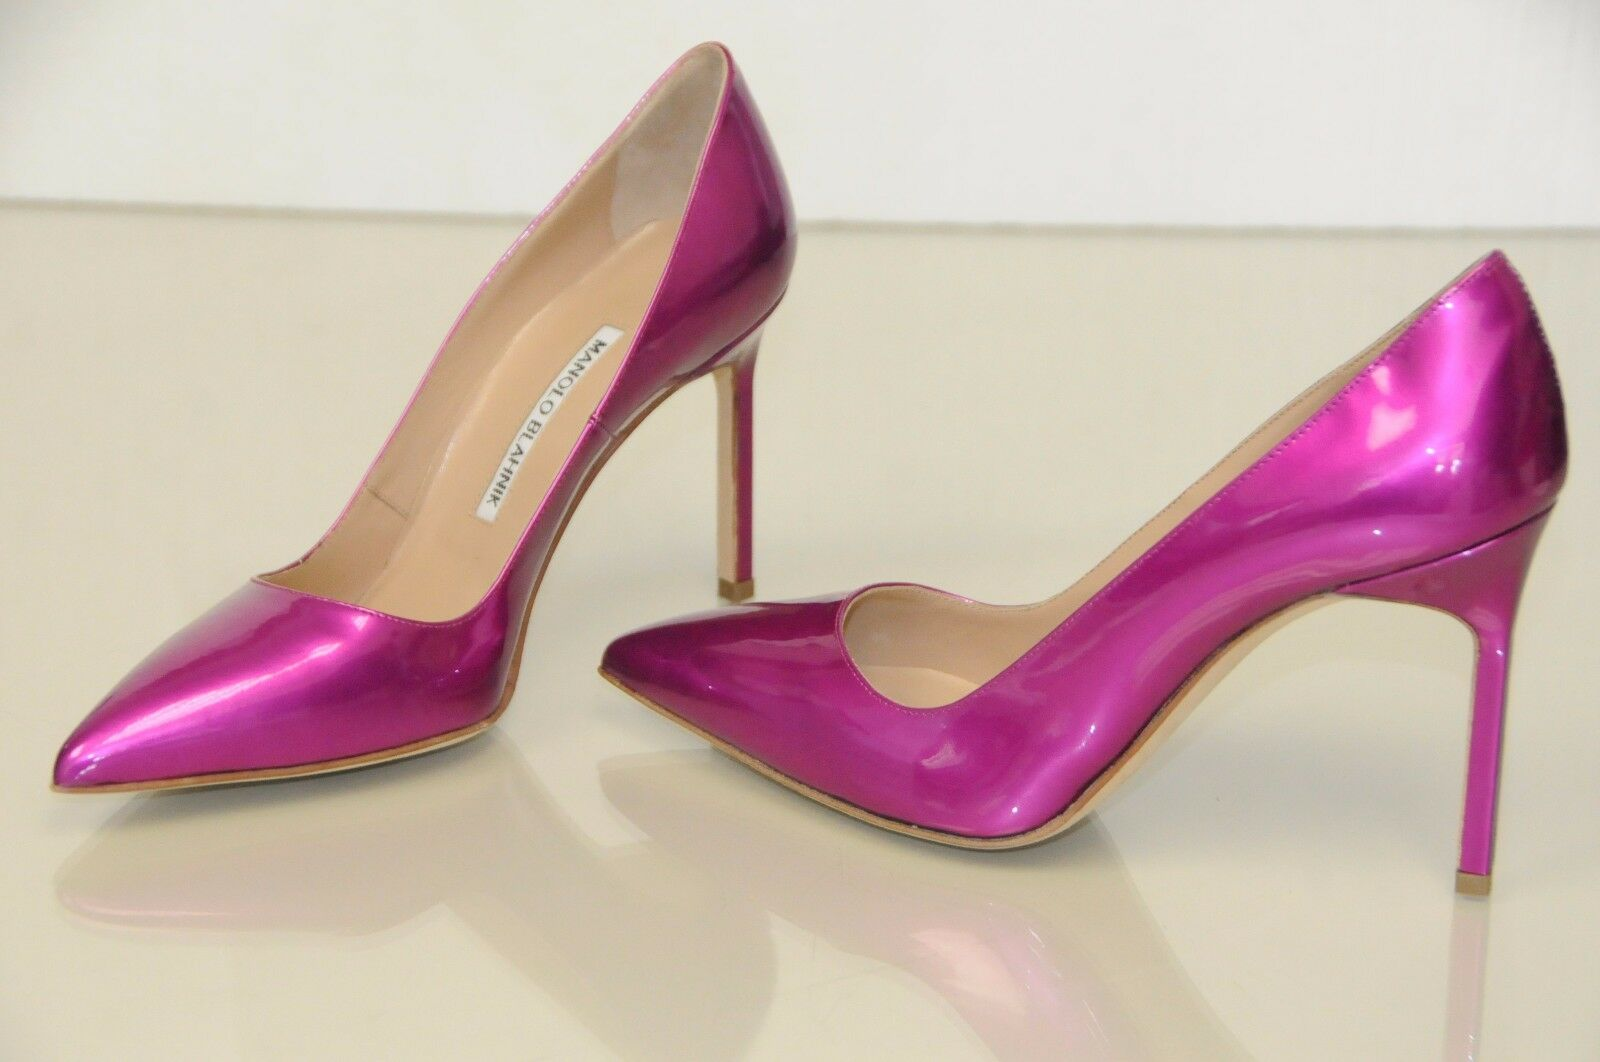 New Manolo Blahnik BB 105 Pink Pearly Patent shoes Pumps 36 36.5 38.5 39.5 40